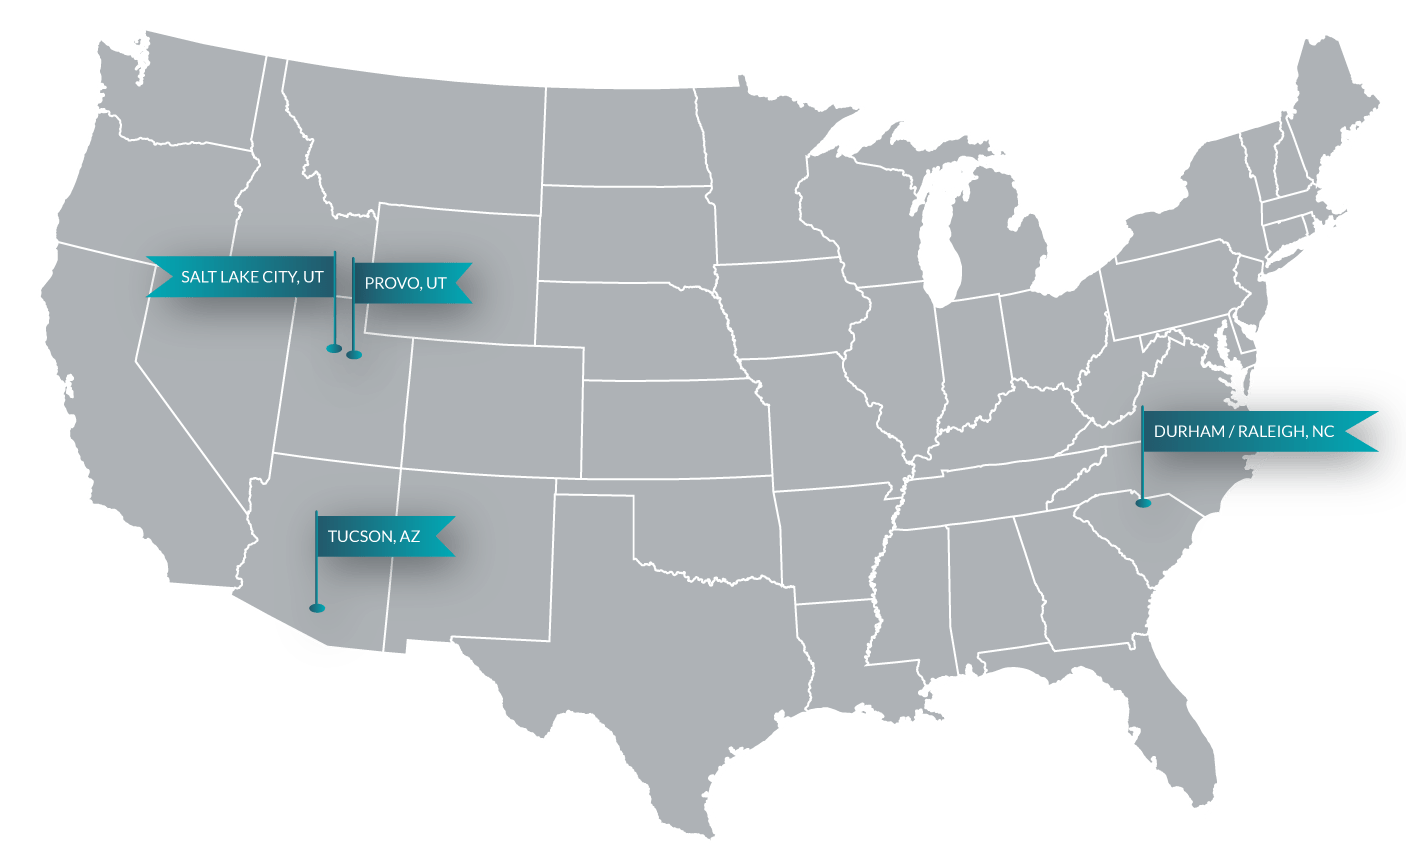 Forbes Article - The 10 US Cities Best Positioned To Recover From Coronavirus (And The 10 Worst)